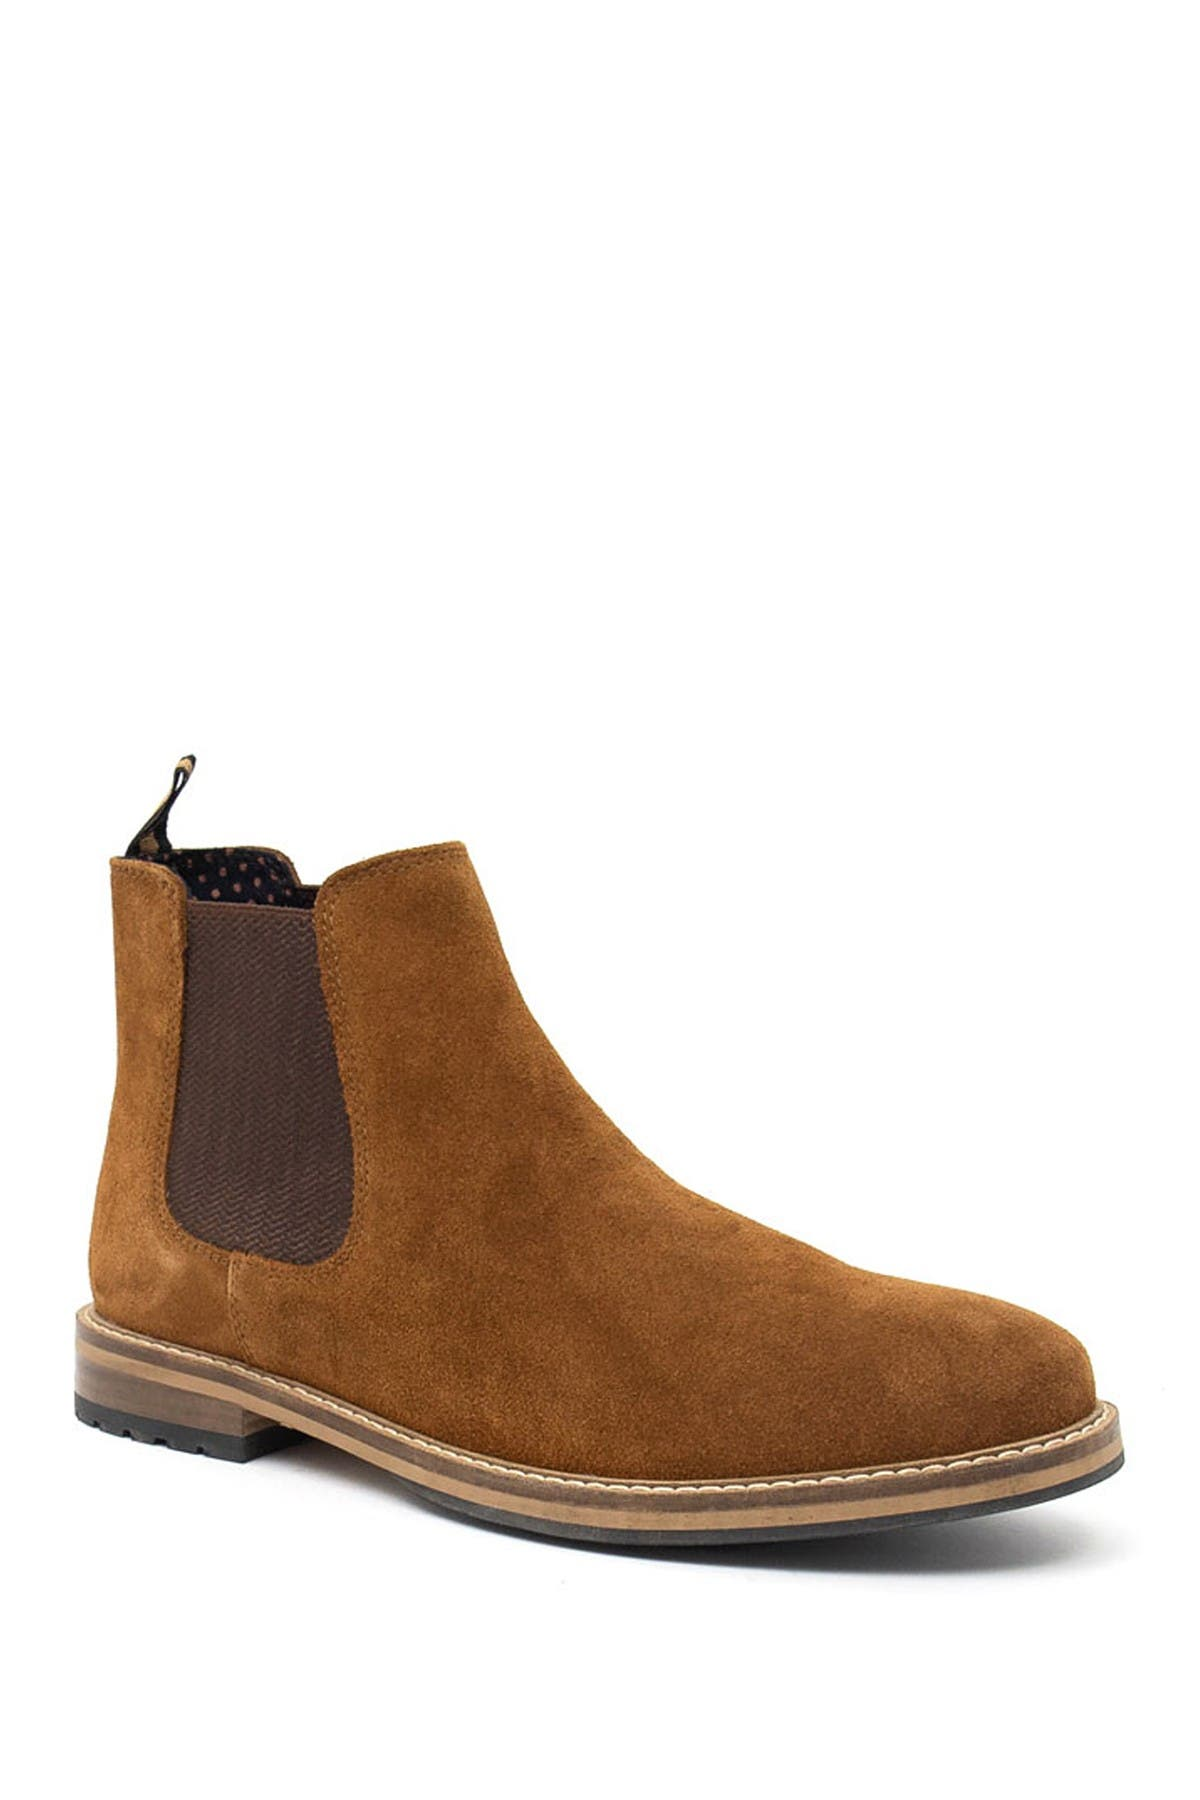 Image of Crevo Rory Water Resistant Leather Chelsea Boot